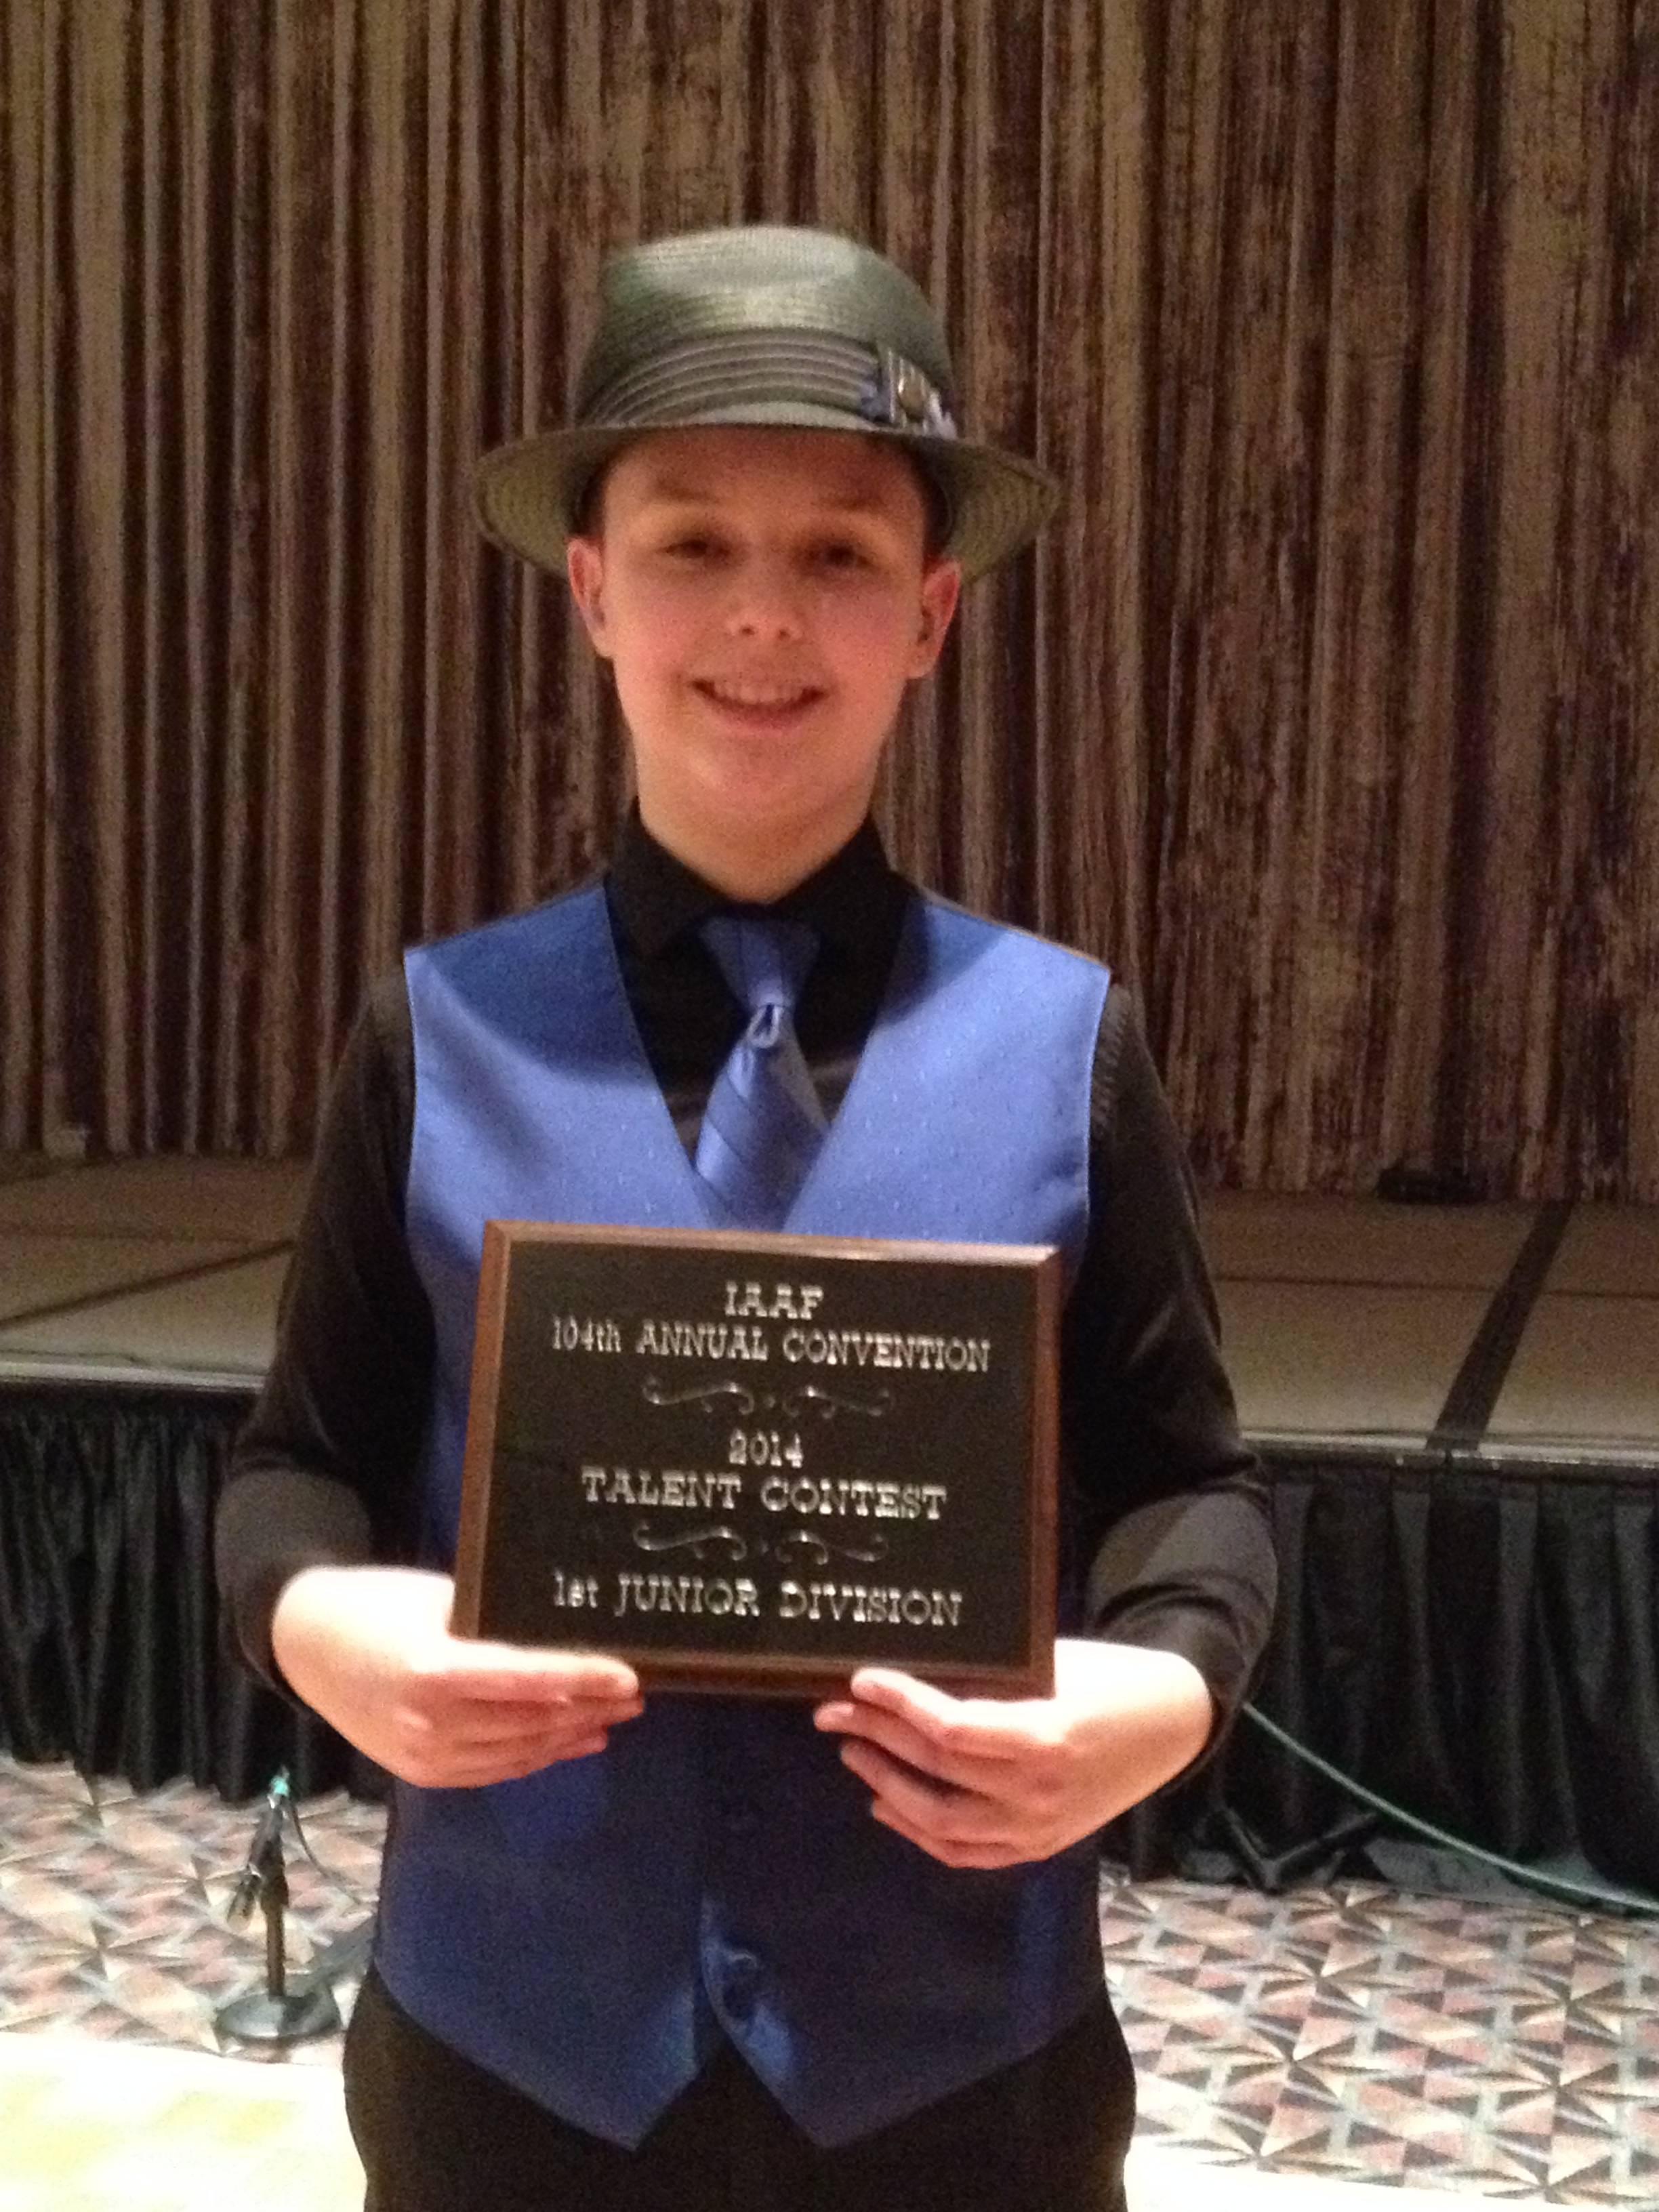 Daniel Souvigny of Hampshire was last year's Junior Division first-place winner at the Kane County Fair Talent Contest, and the state of Illinois first-place champ this past January in Springfield. ion